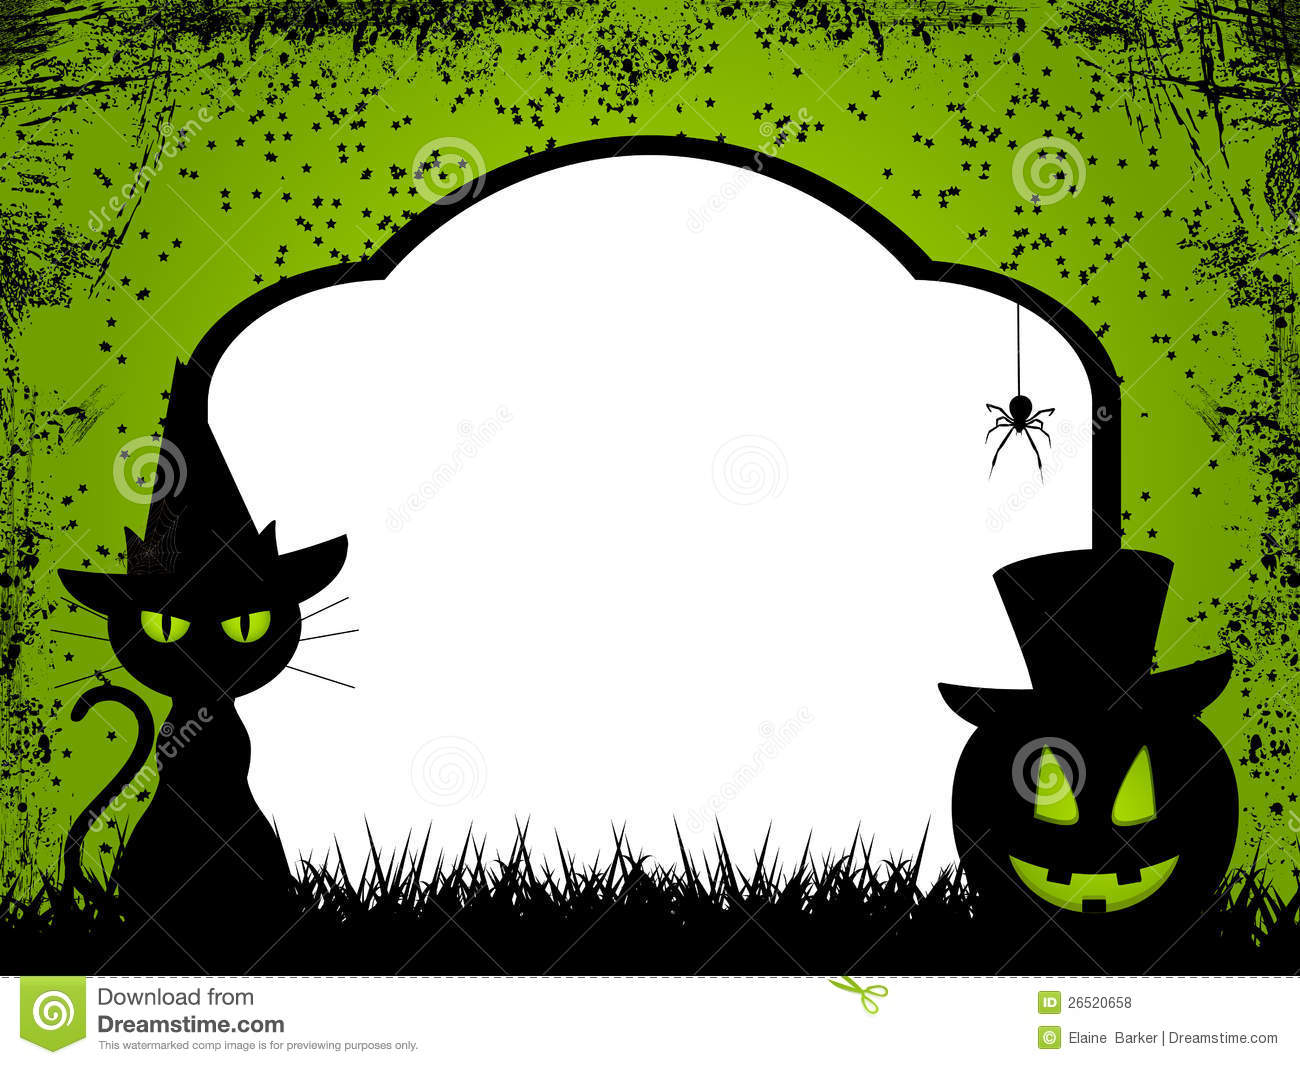 background black cat halloween - Halloween Background Images Free